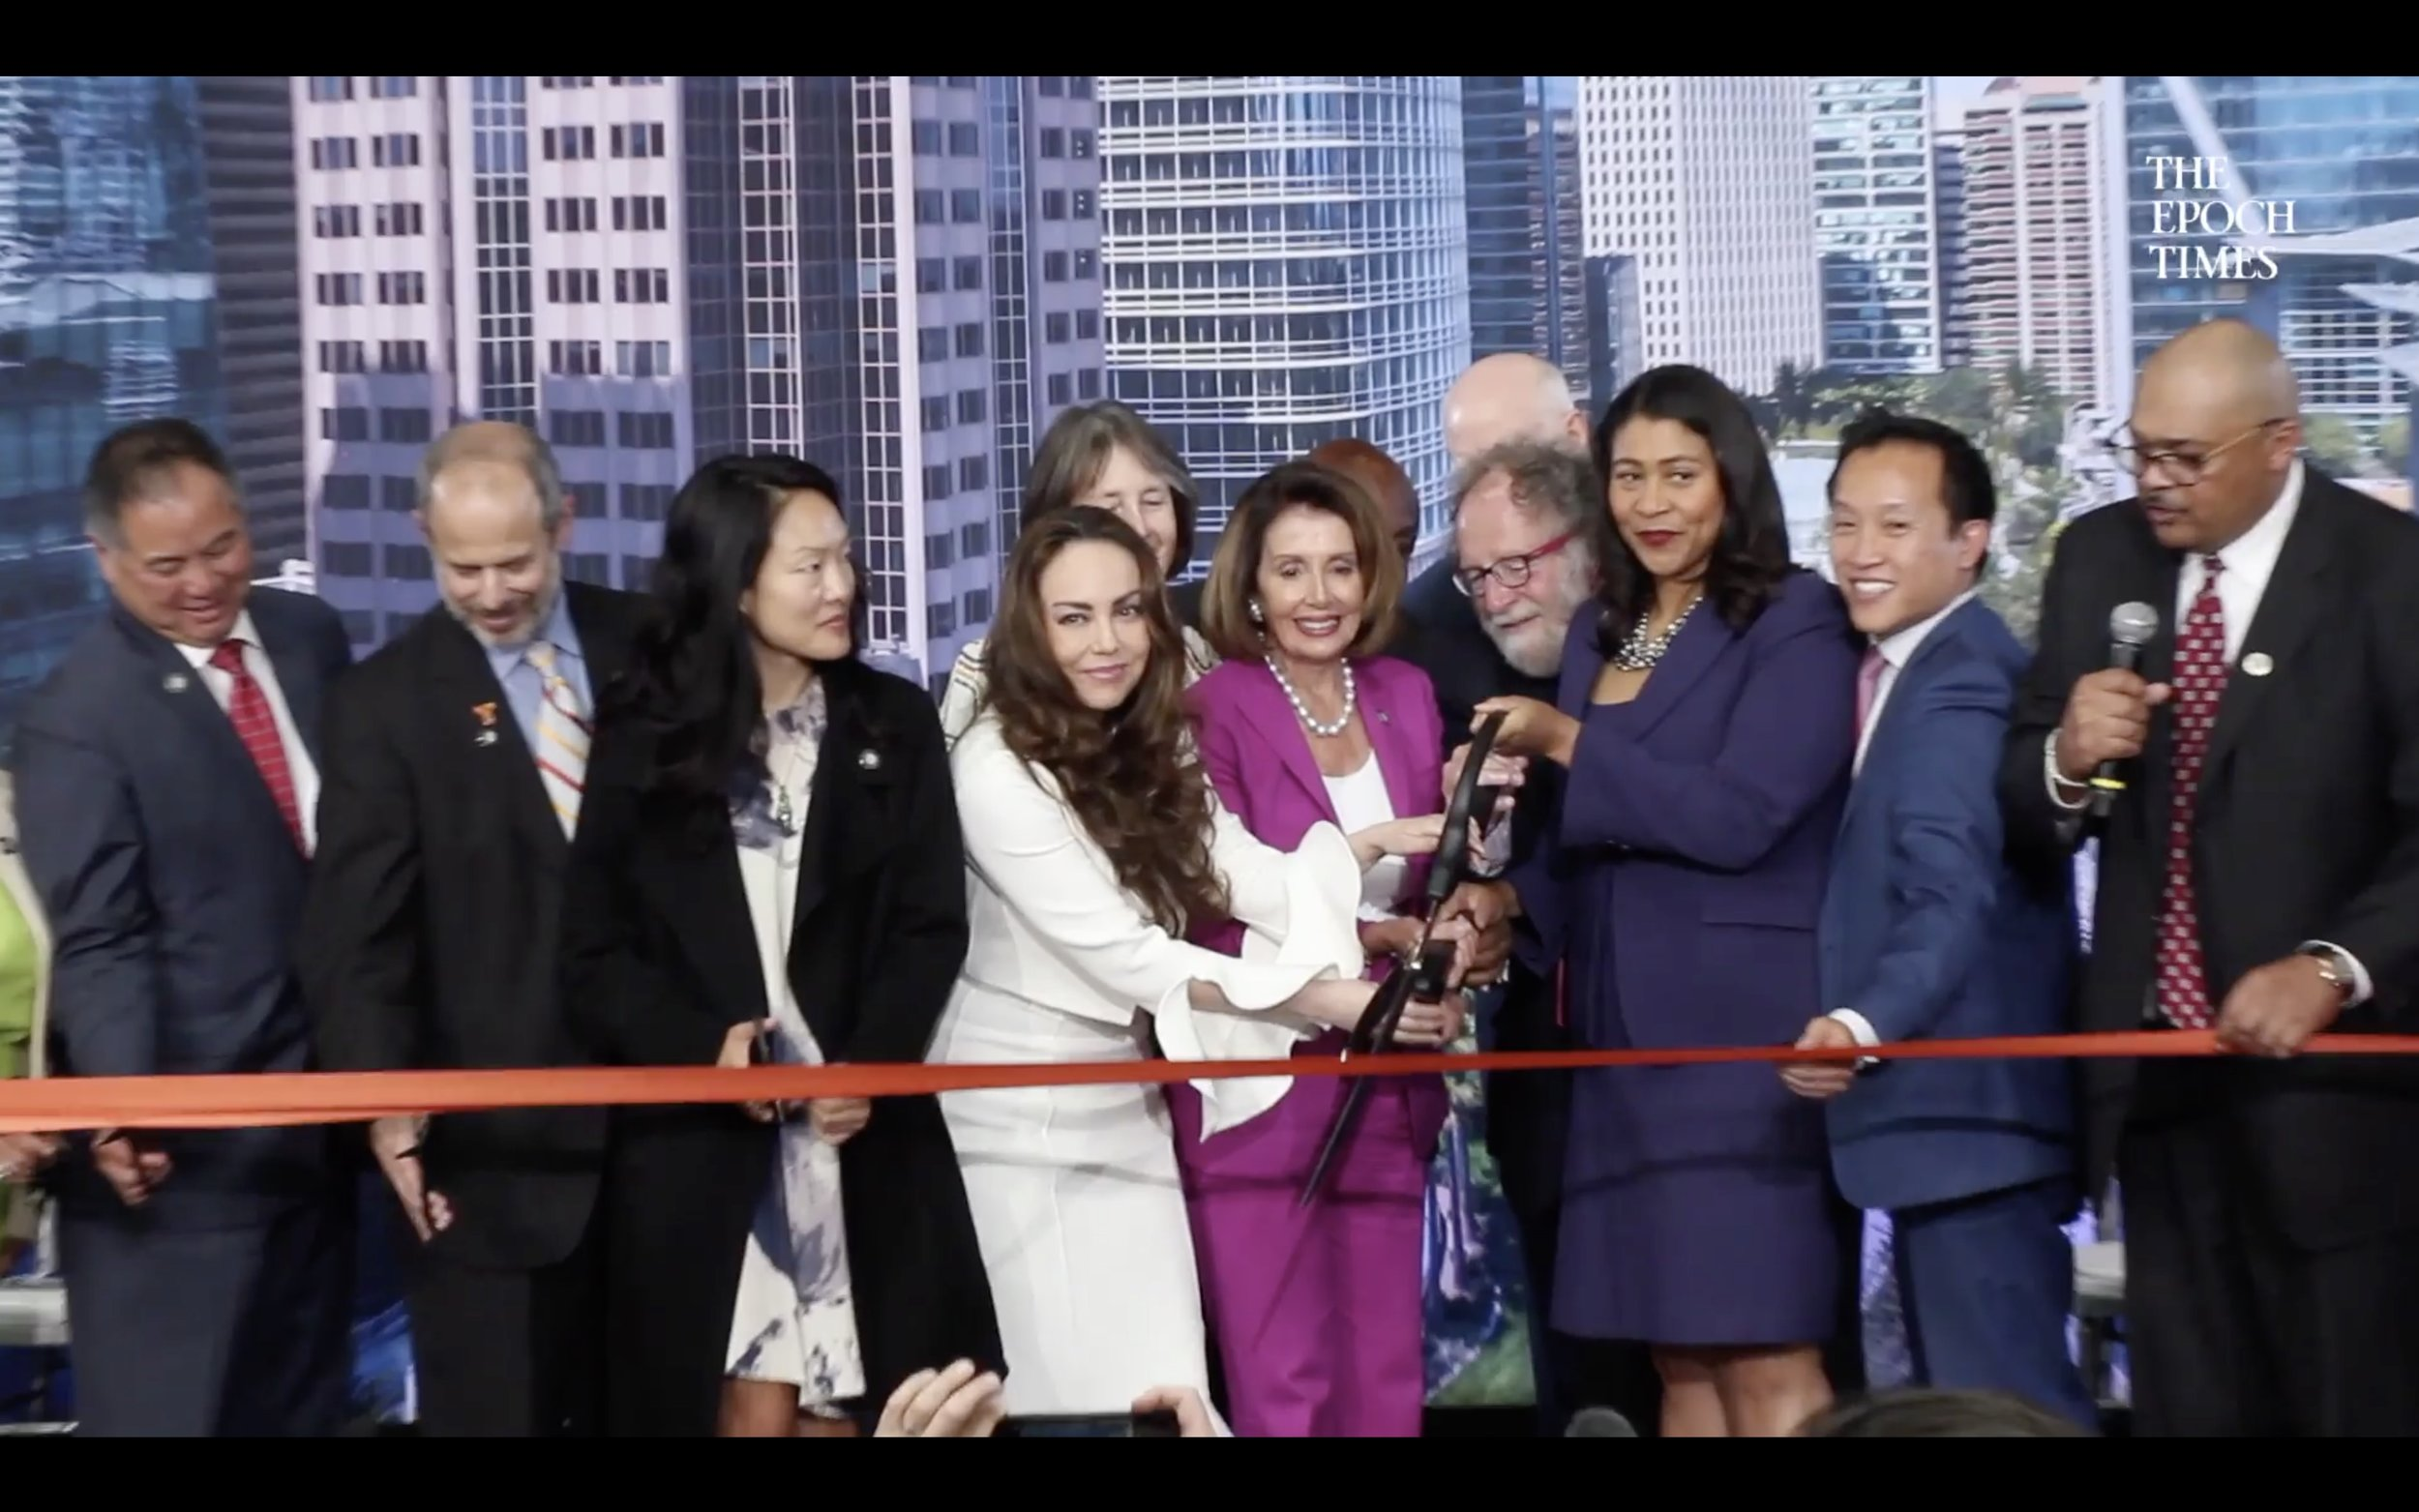 salesforce-ribbon-cutting.jpg